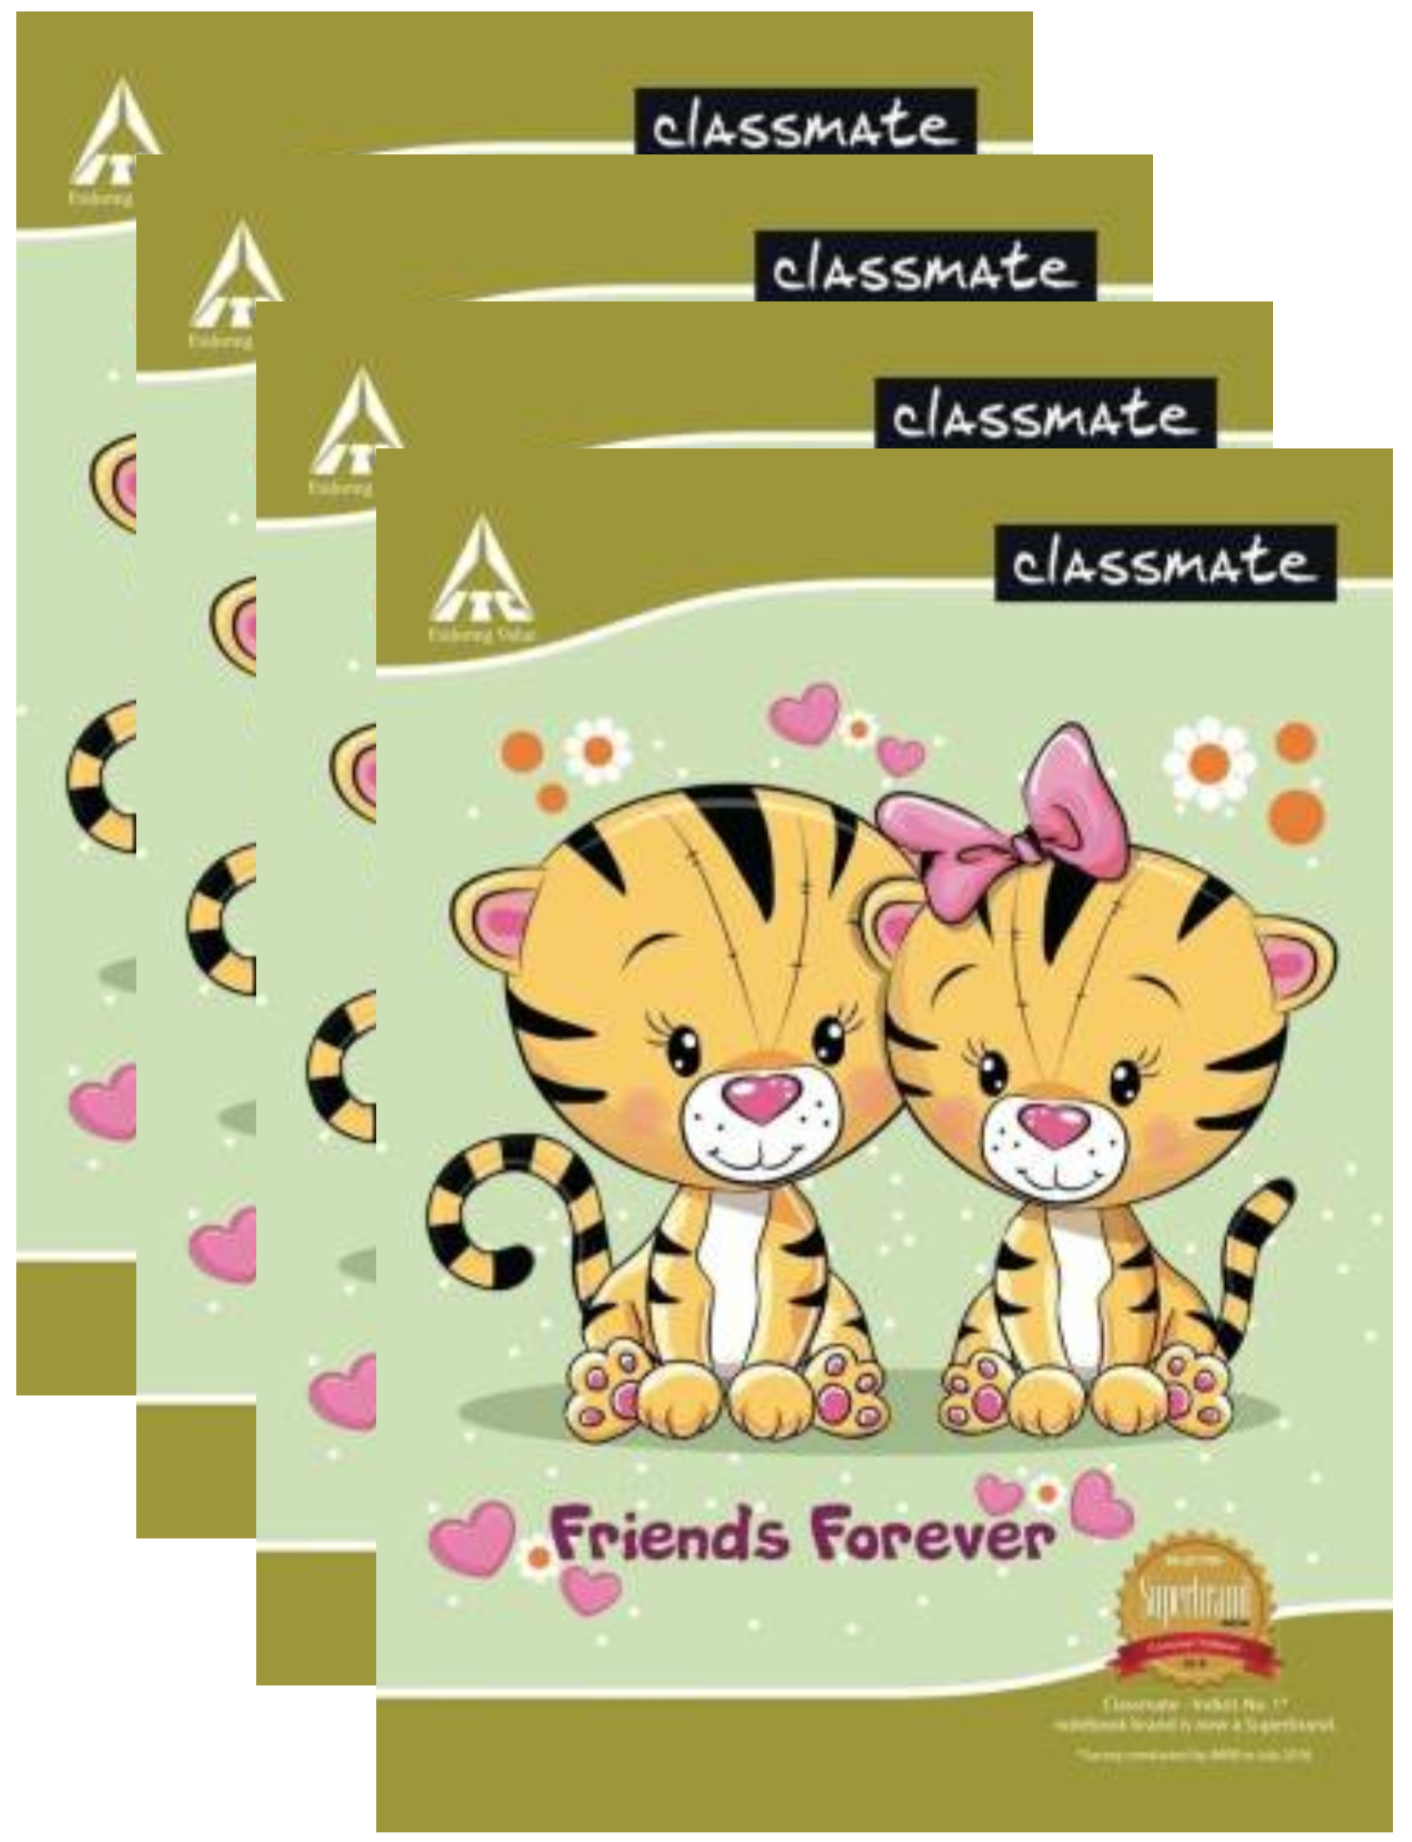 Classmate Small Notebook Test Copy Soft Cover Single Line 48 Pages 19X15.5 CM Pack of 4